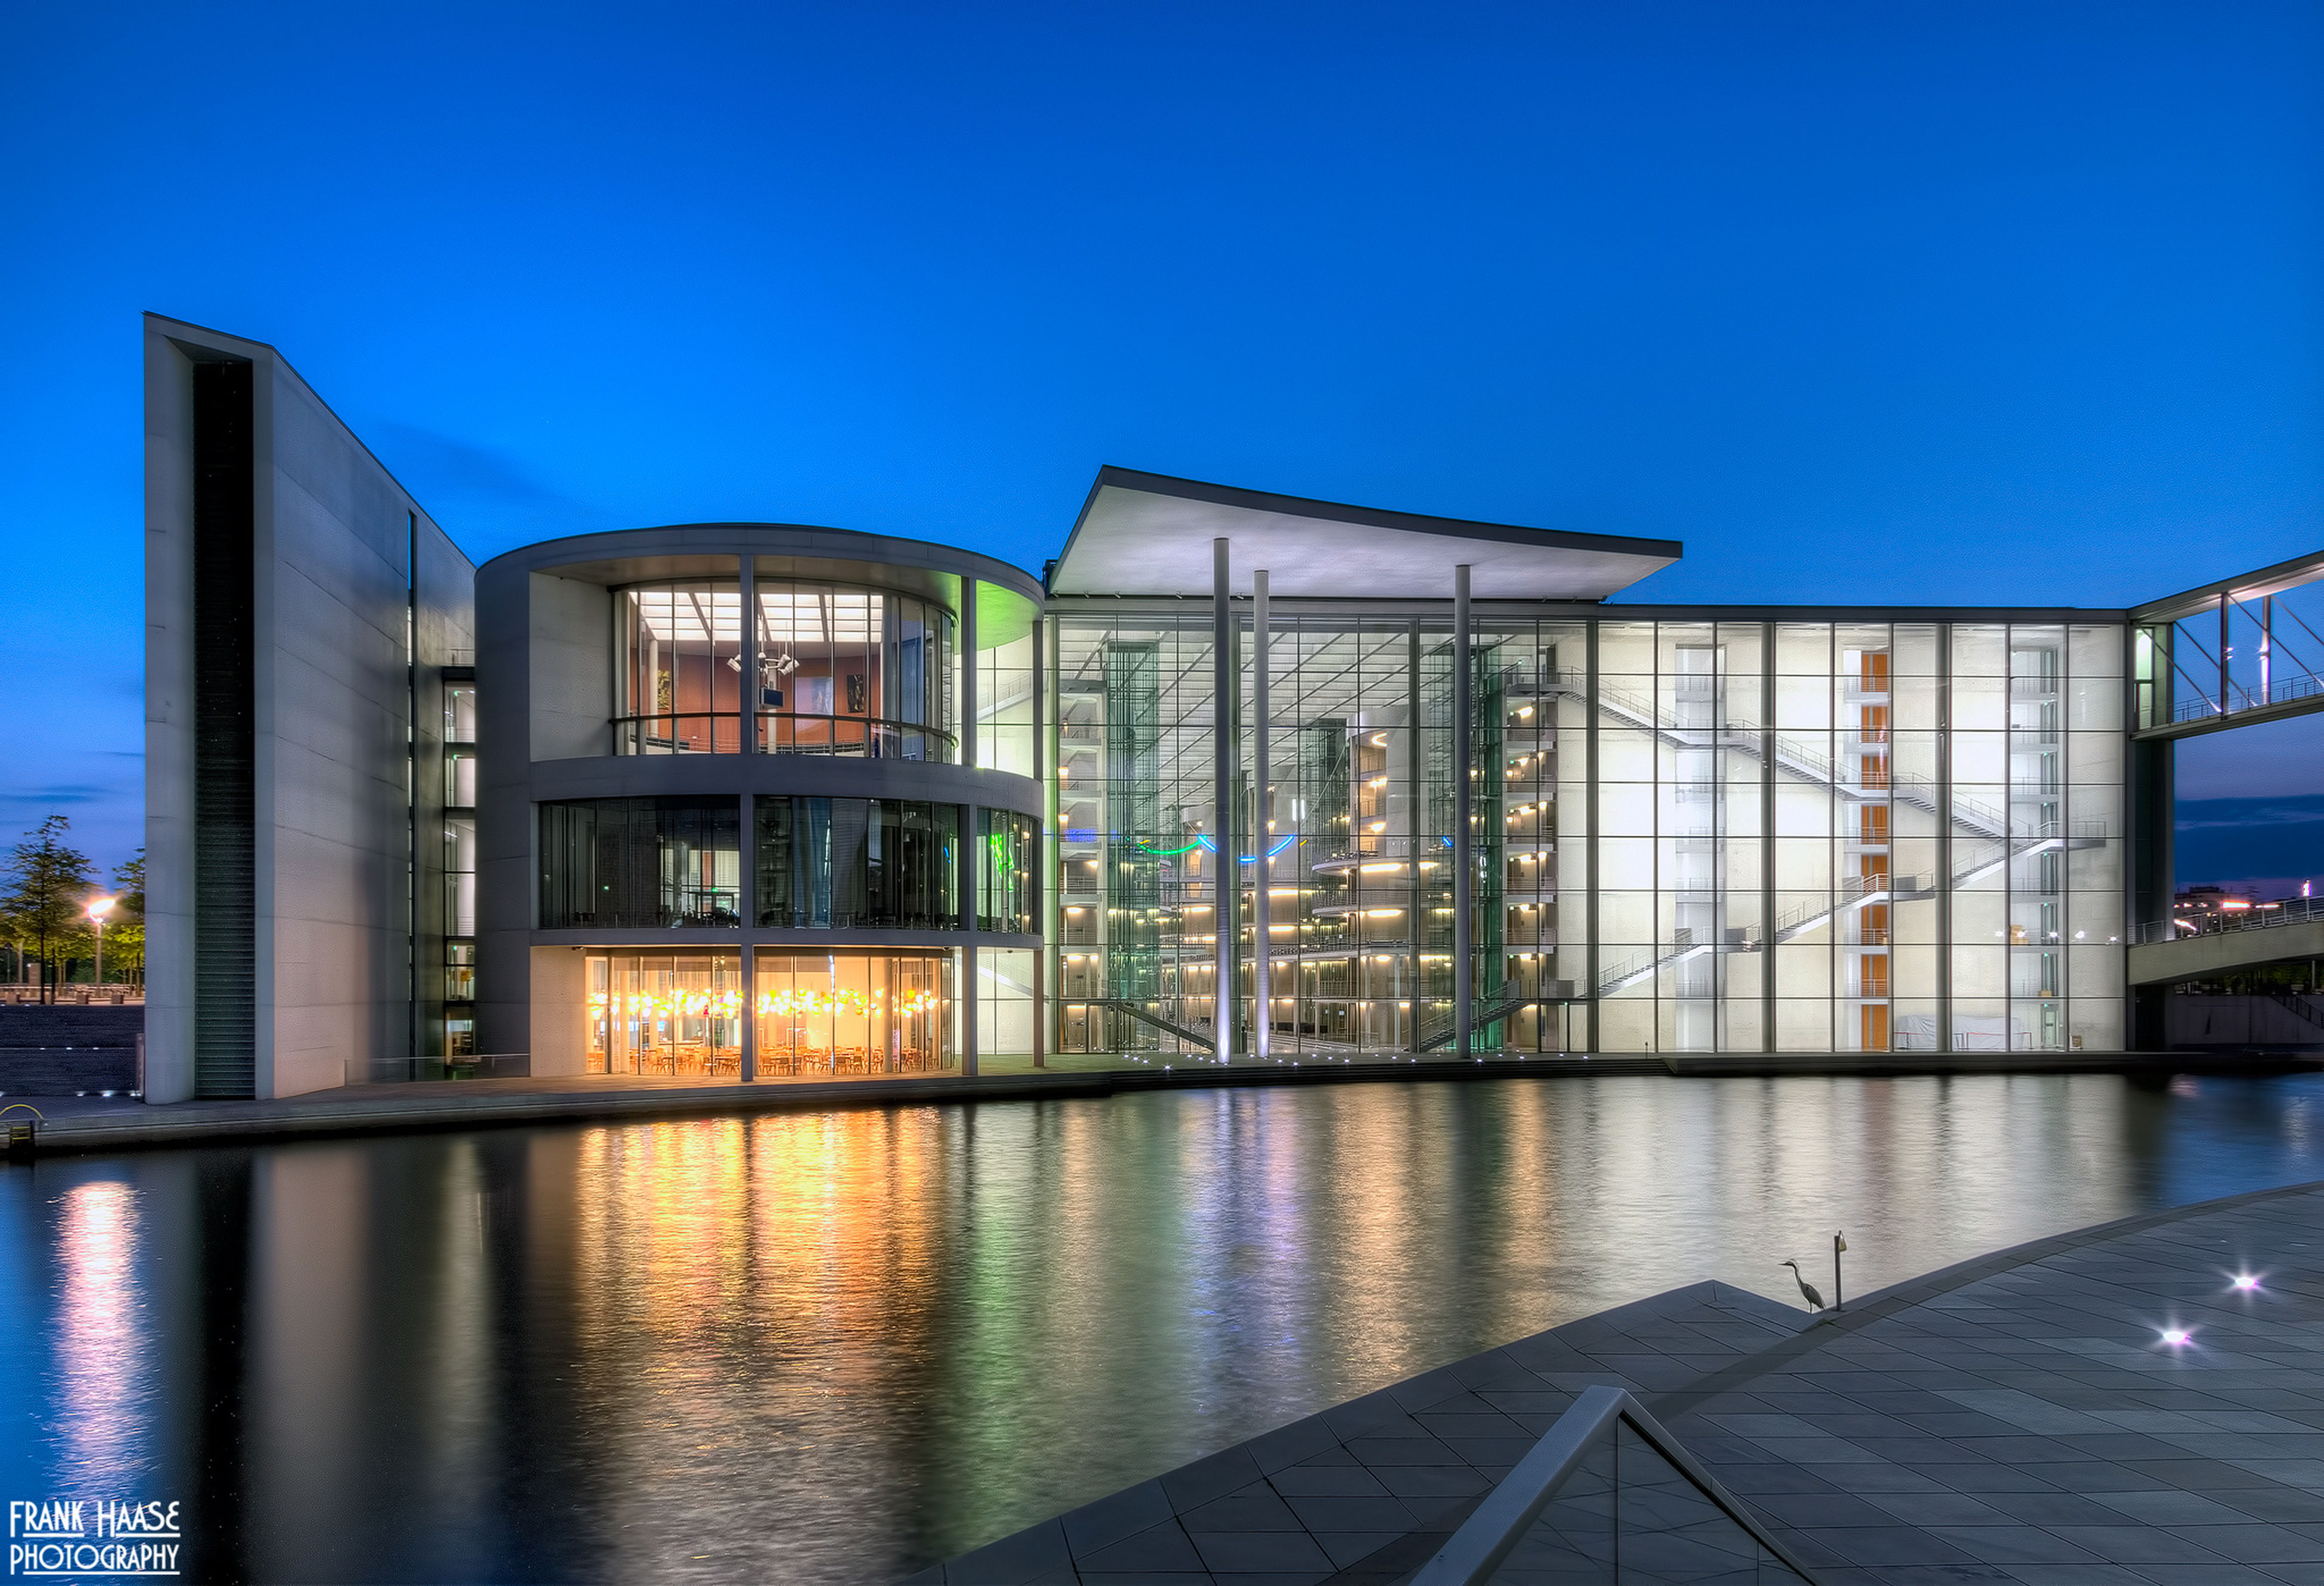 architecture, blue, reflection, built structure, building exterior, sky, clear sky, water, illuminated, no people, travel destinations, city, outdoors, modern, day